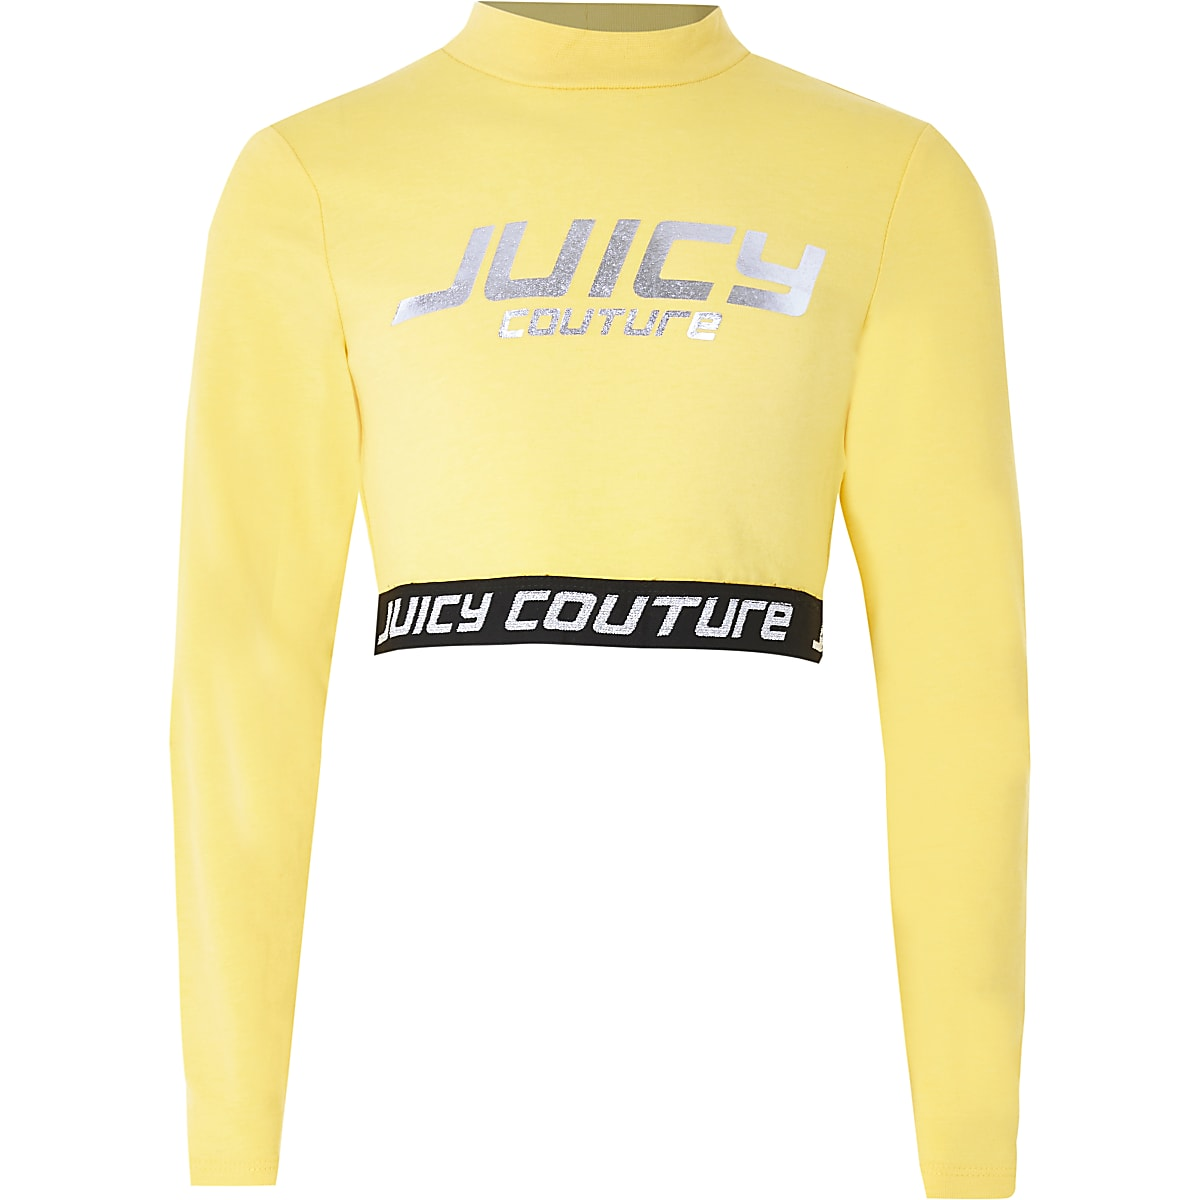 Girls Juicy Couture yellow cropped top